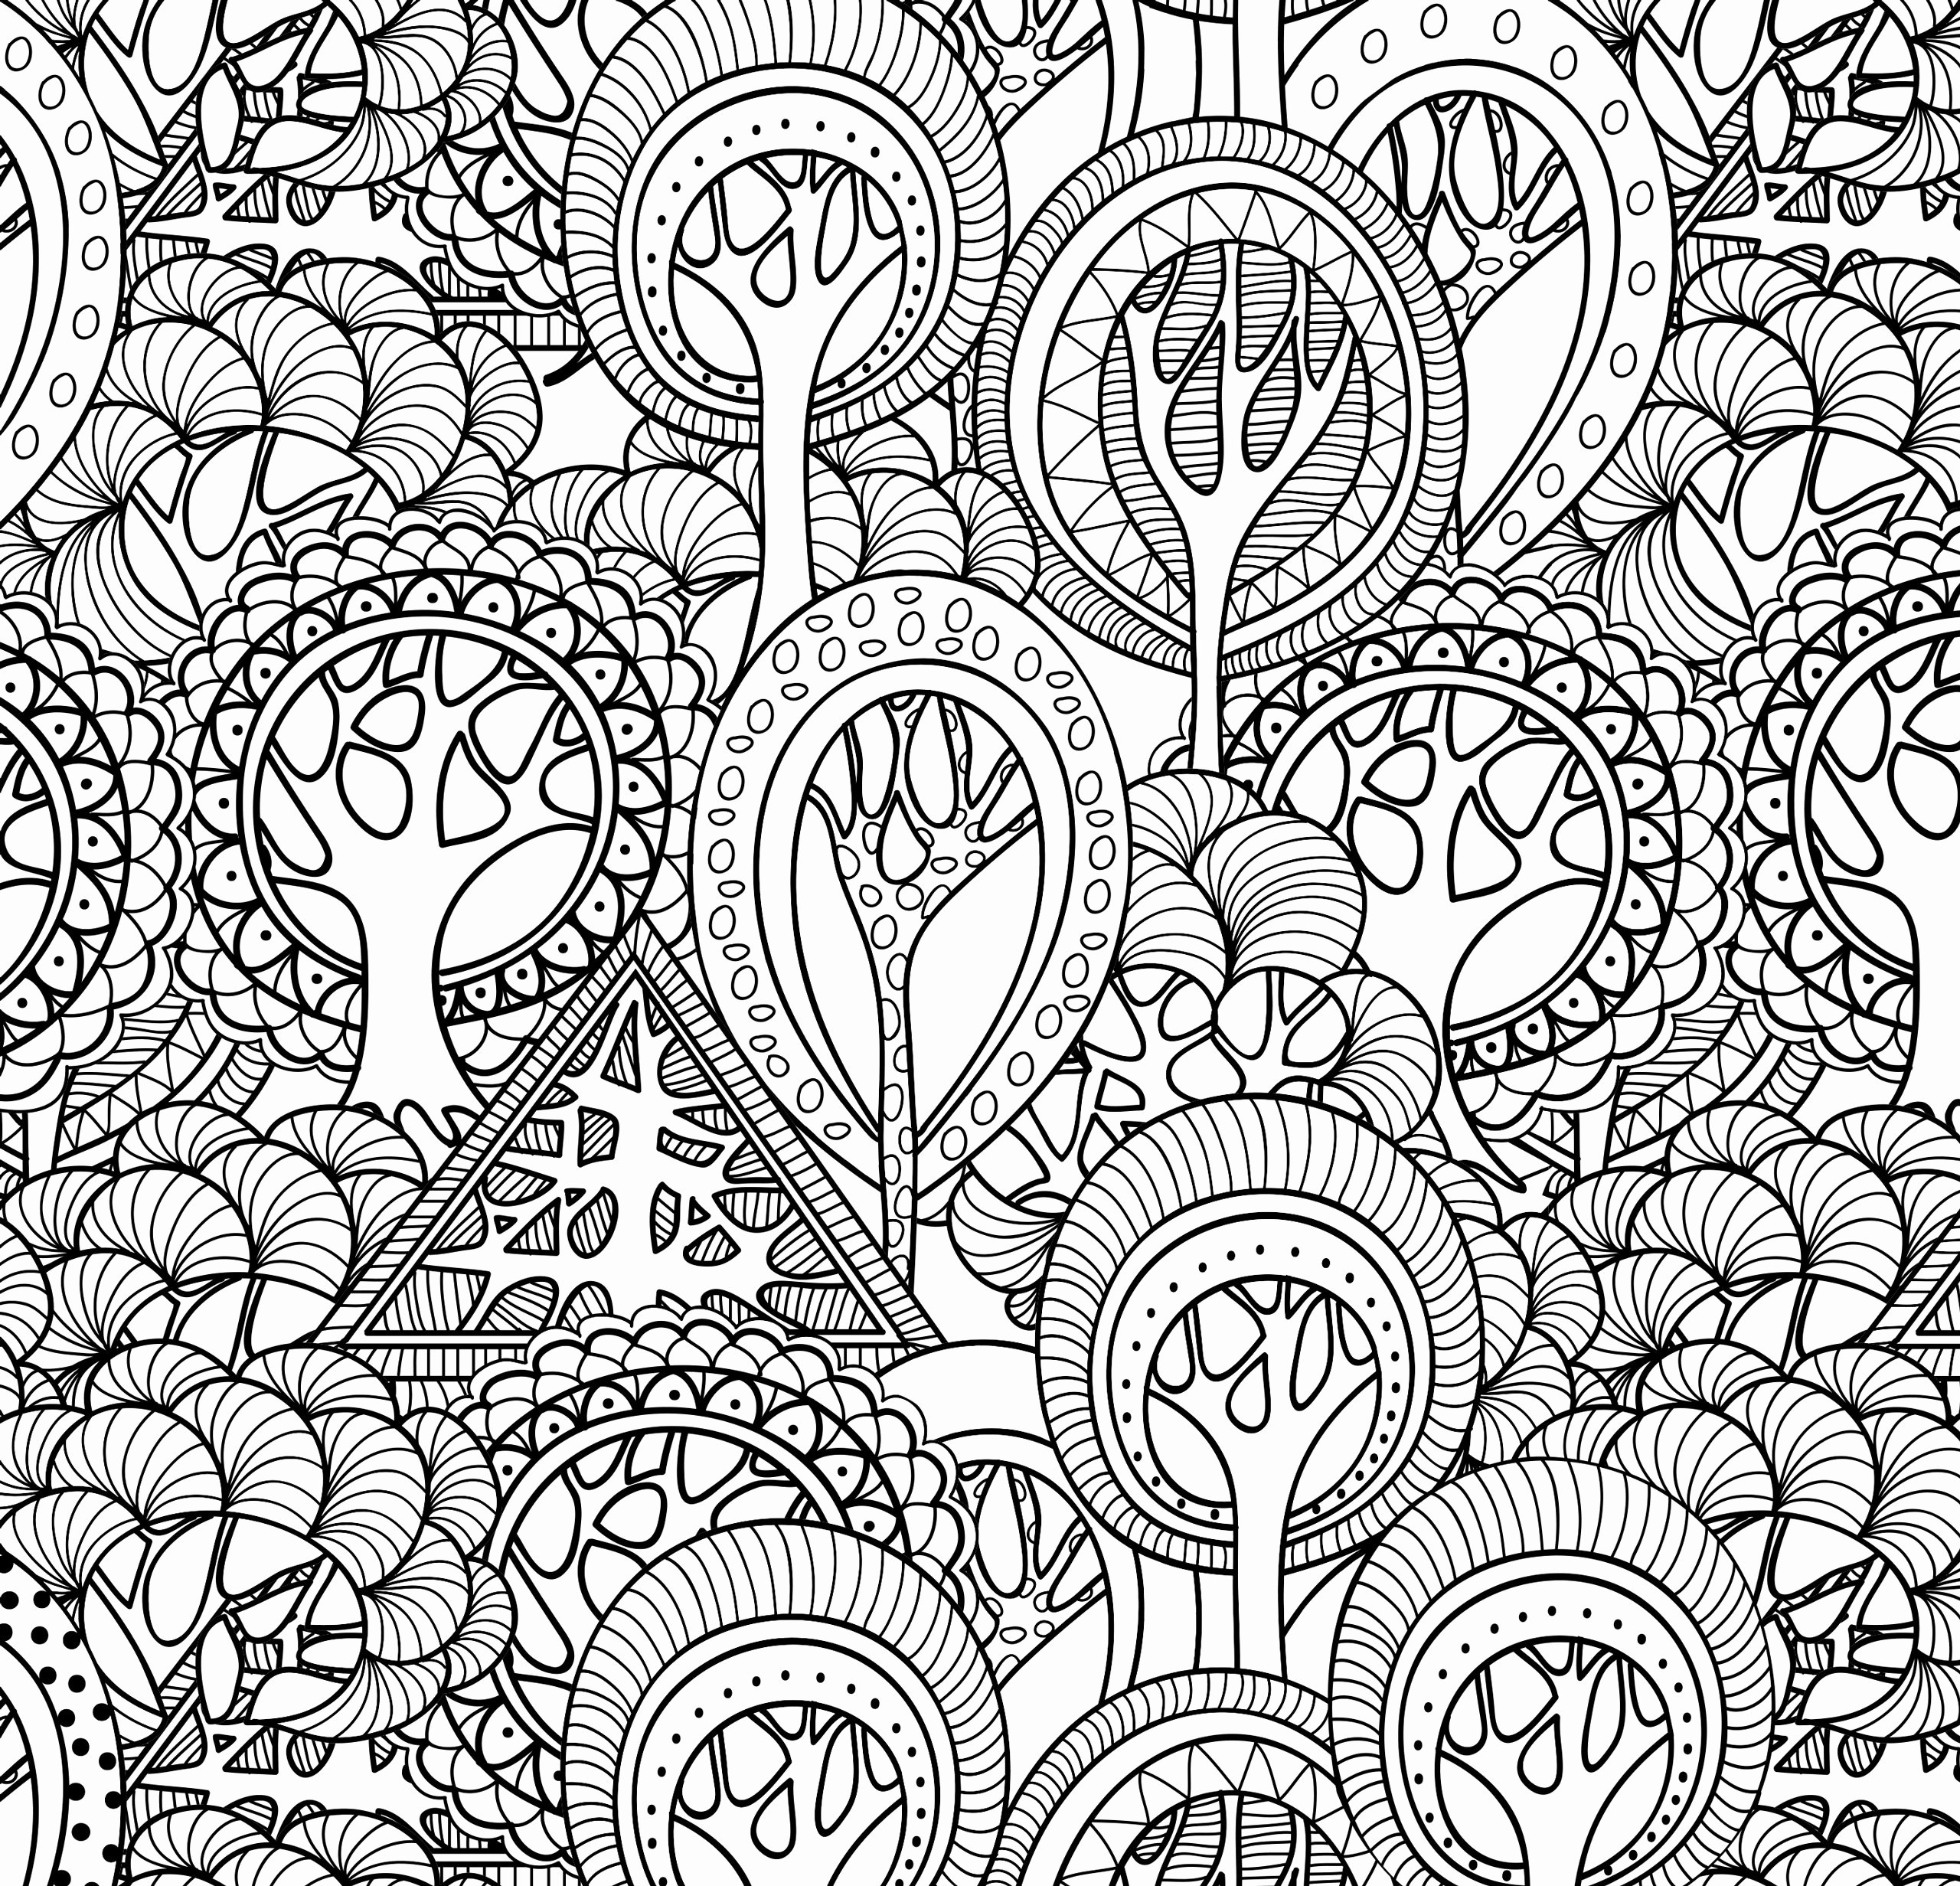 difficult coloring pages for adults difficult coloring pages for adults at getcoloringscom for pages coloring difficult adults